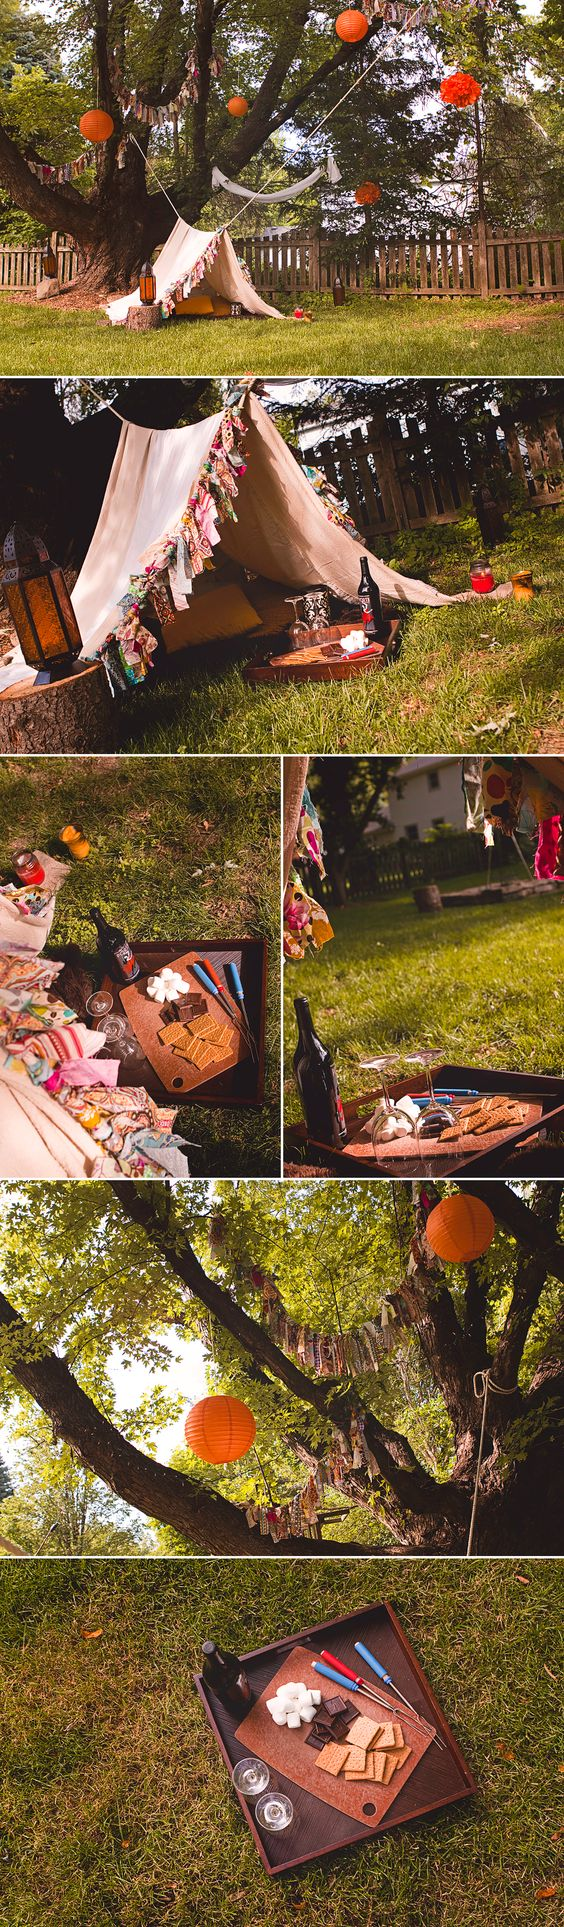 Sunny Days Backyard Camp : Glamping  Camping  Fall Photo Session  Sunshine Magazine  Deanne